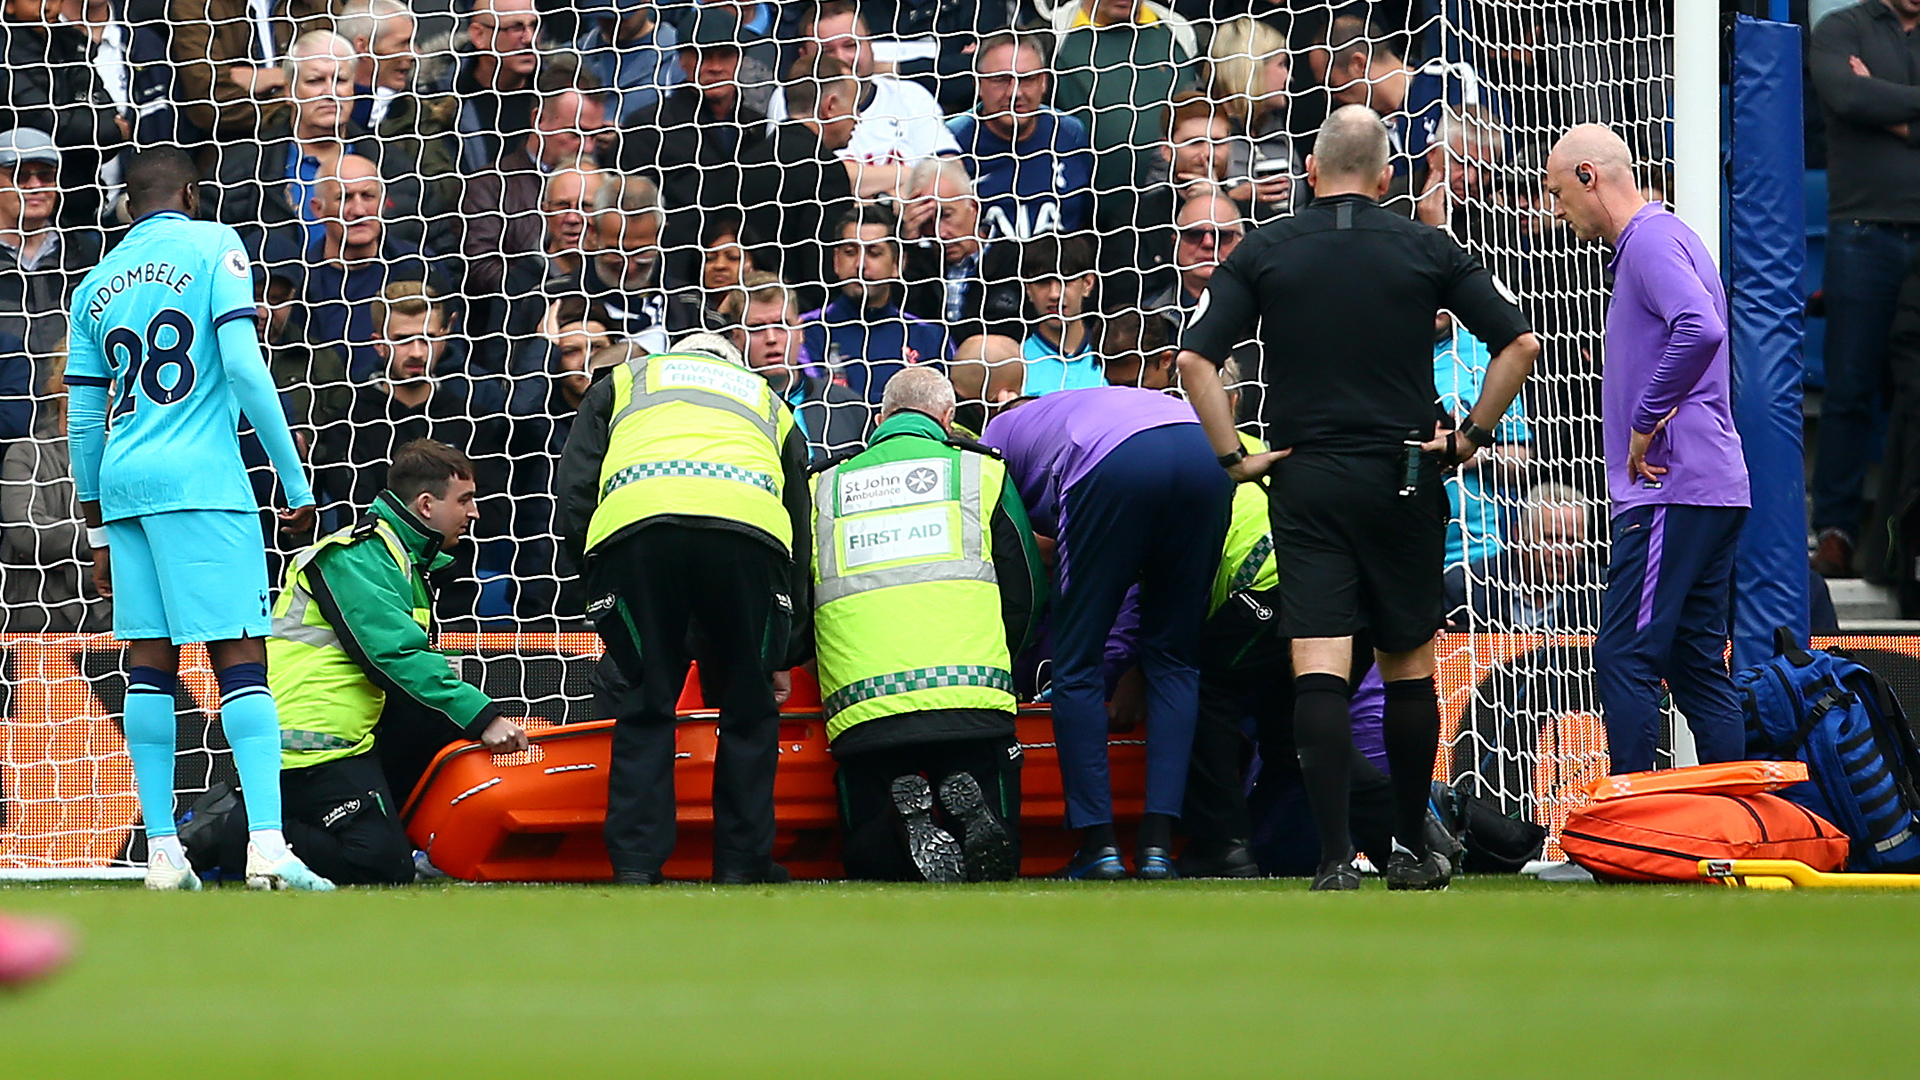 Spurs confirm injured captain Lloris ruled out for rest of 2019